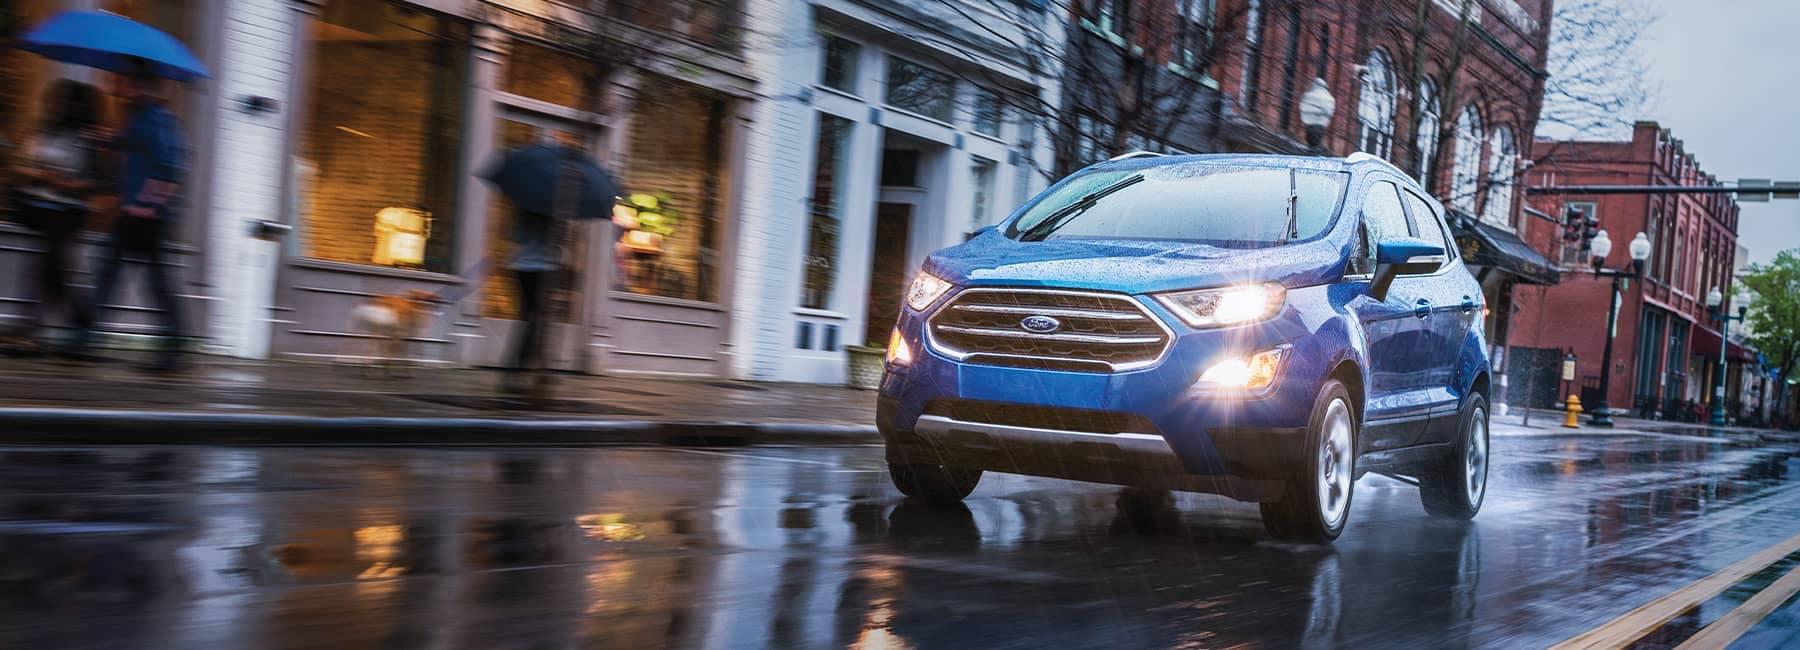 Blue 2021 Ford EcoSport driving on a rainy suburban town street